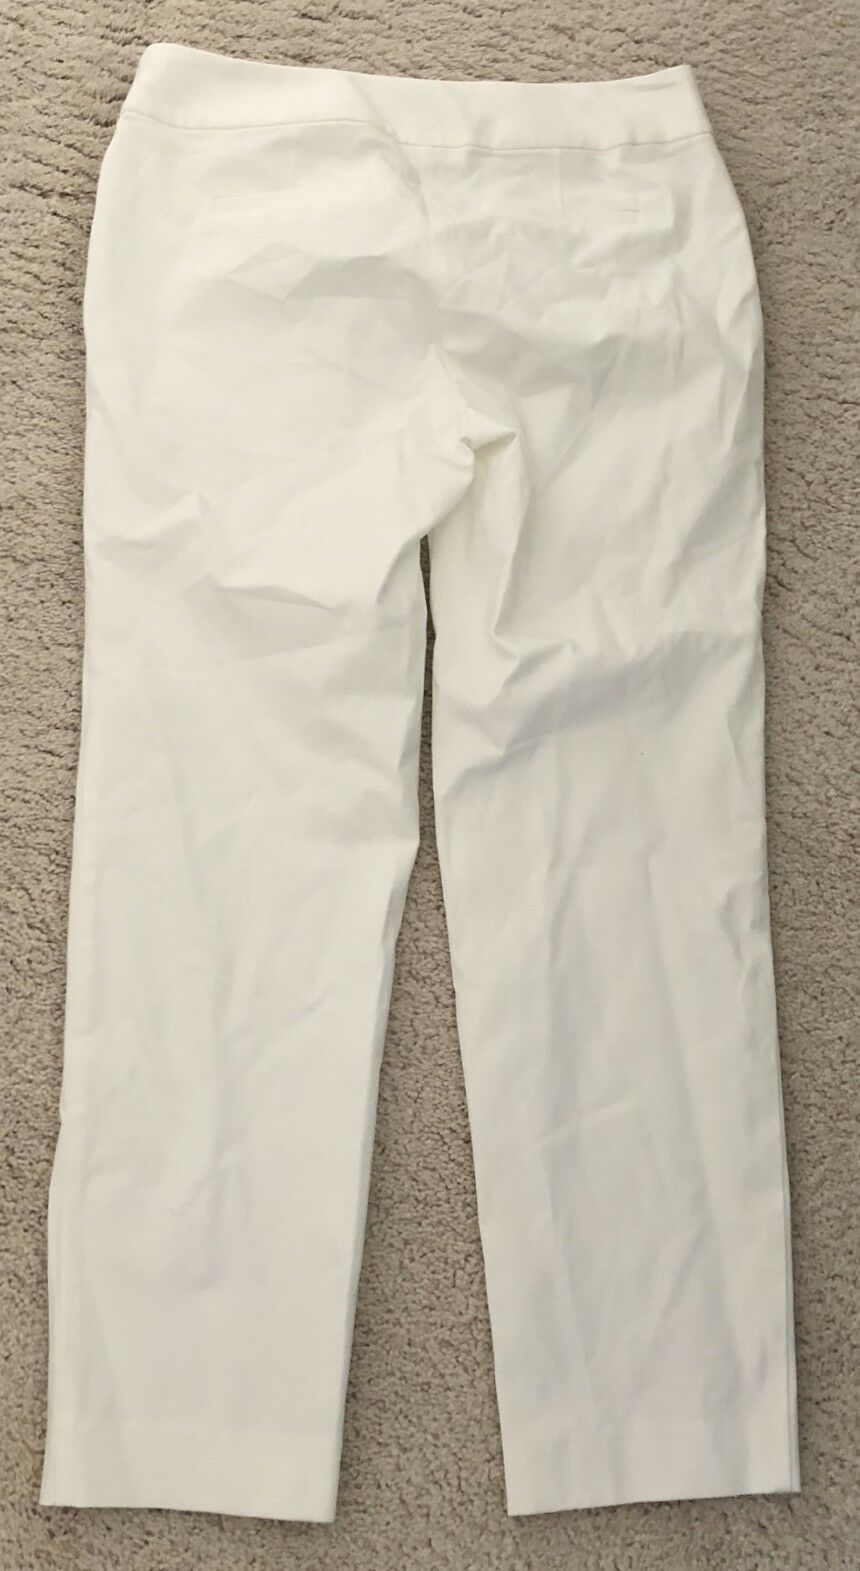 NWT Charter Club Off-White Classic Fit Trouser Dress Pants Cotton Stretch 6